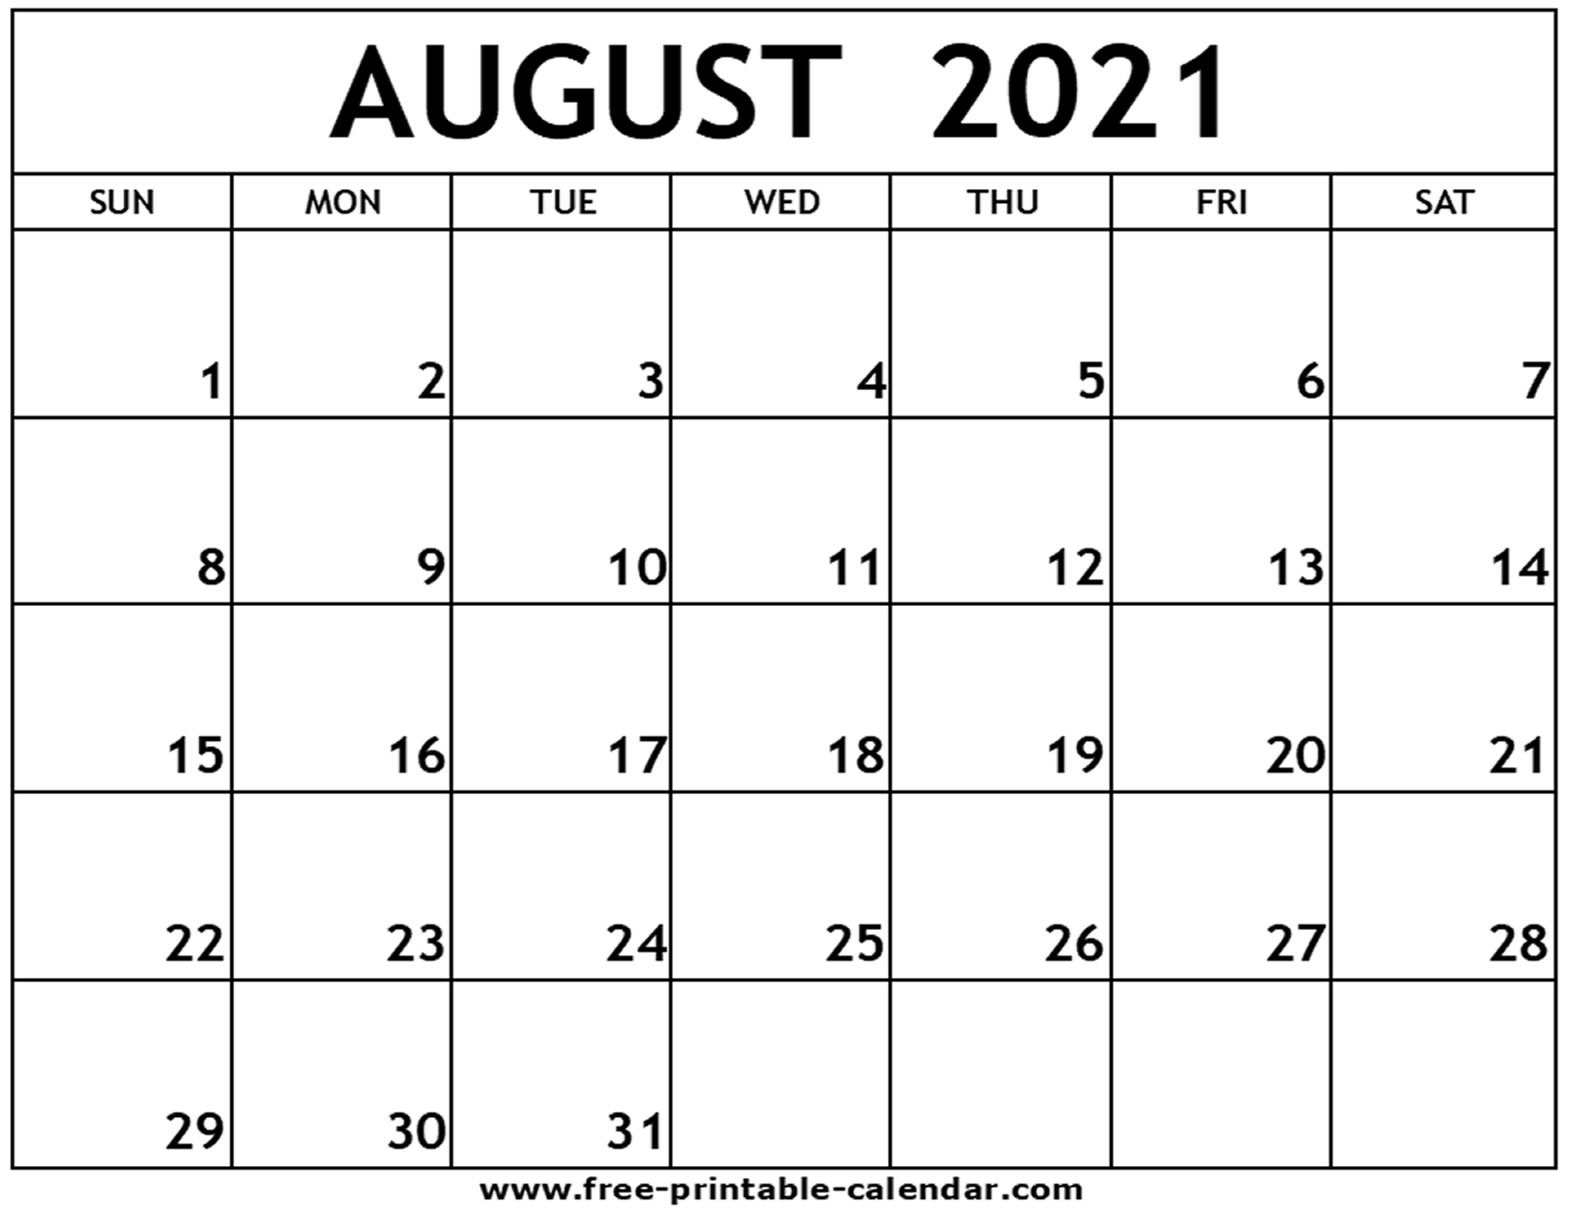 Get Printable Monthly Calendar 2021 Free August